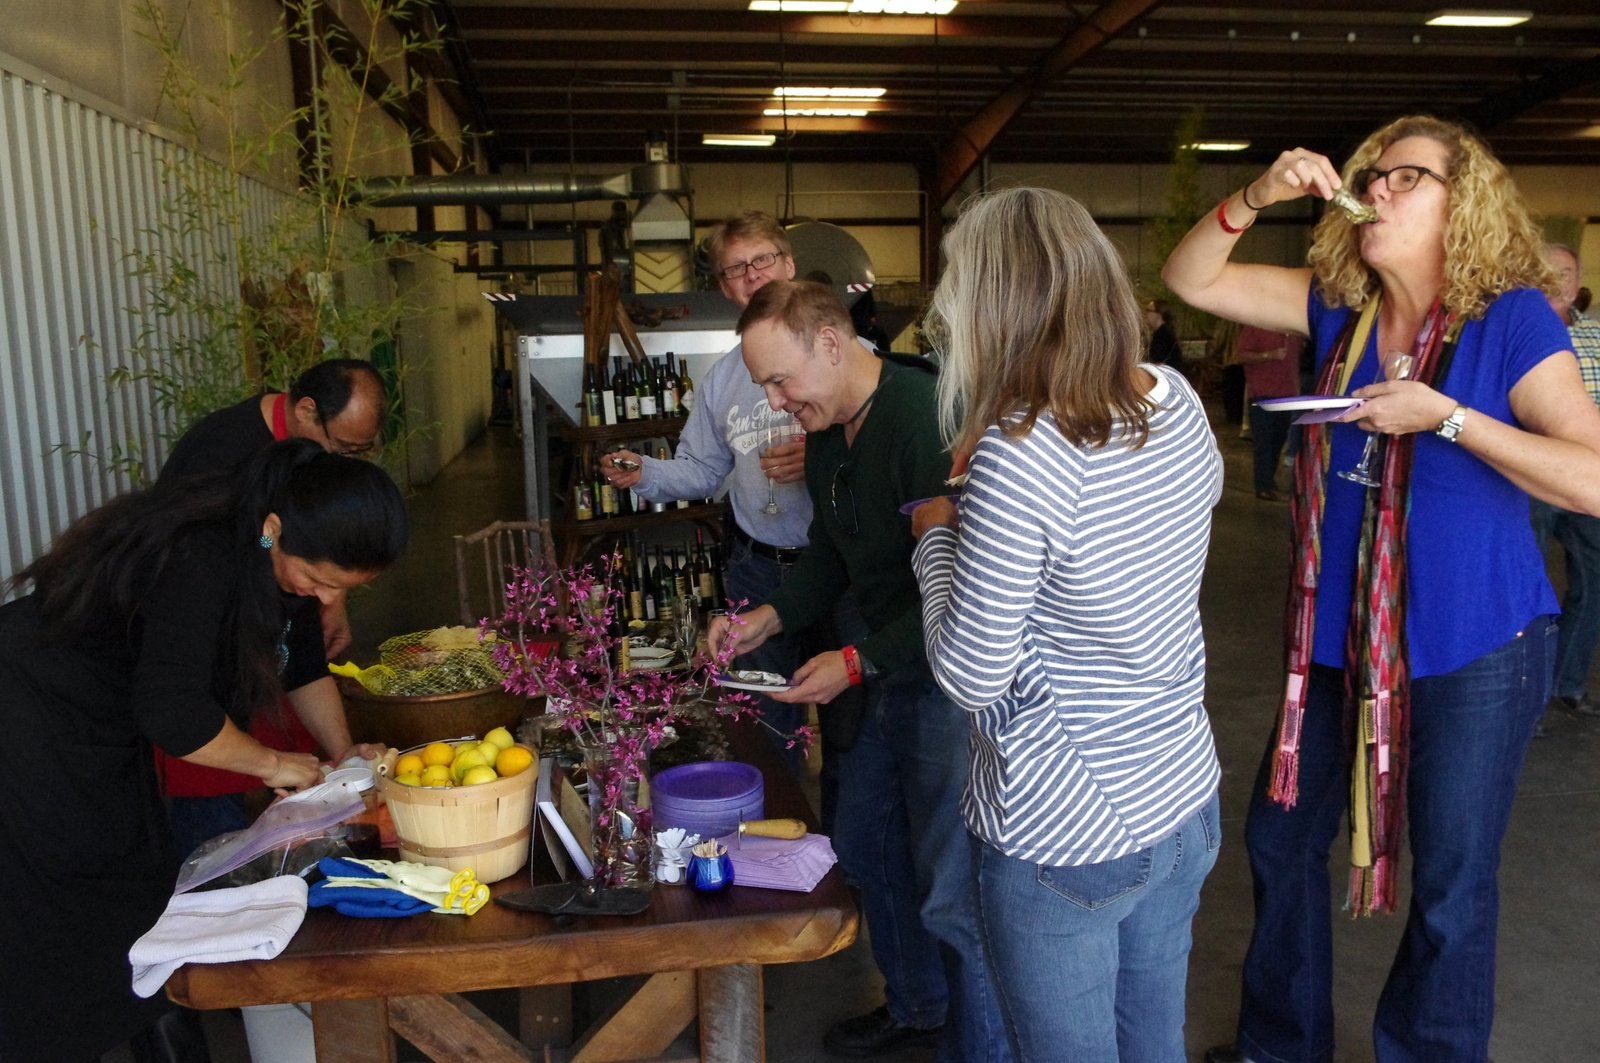 festival attendees enjoying oysters from tomales bay oyster company